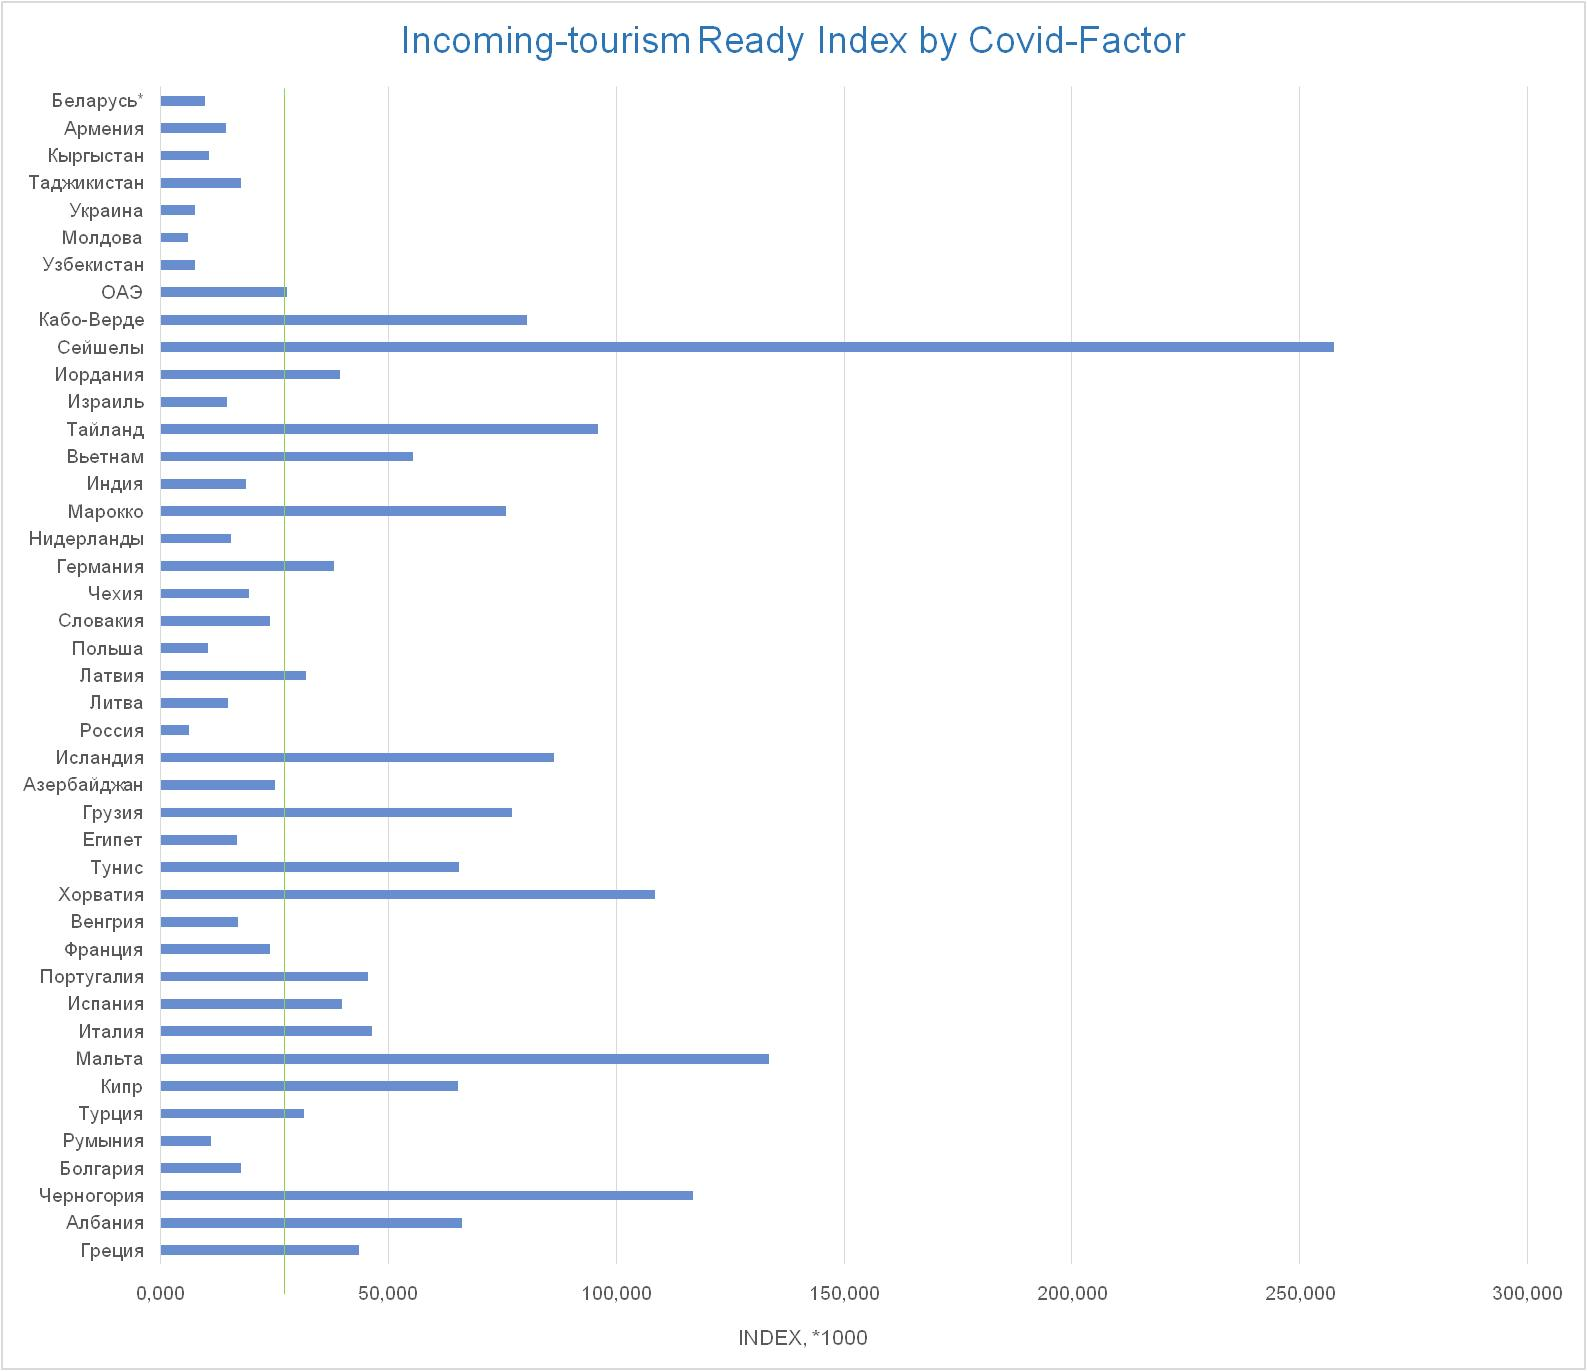 incoming-tourism ready index by covid-factor